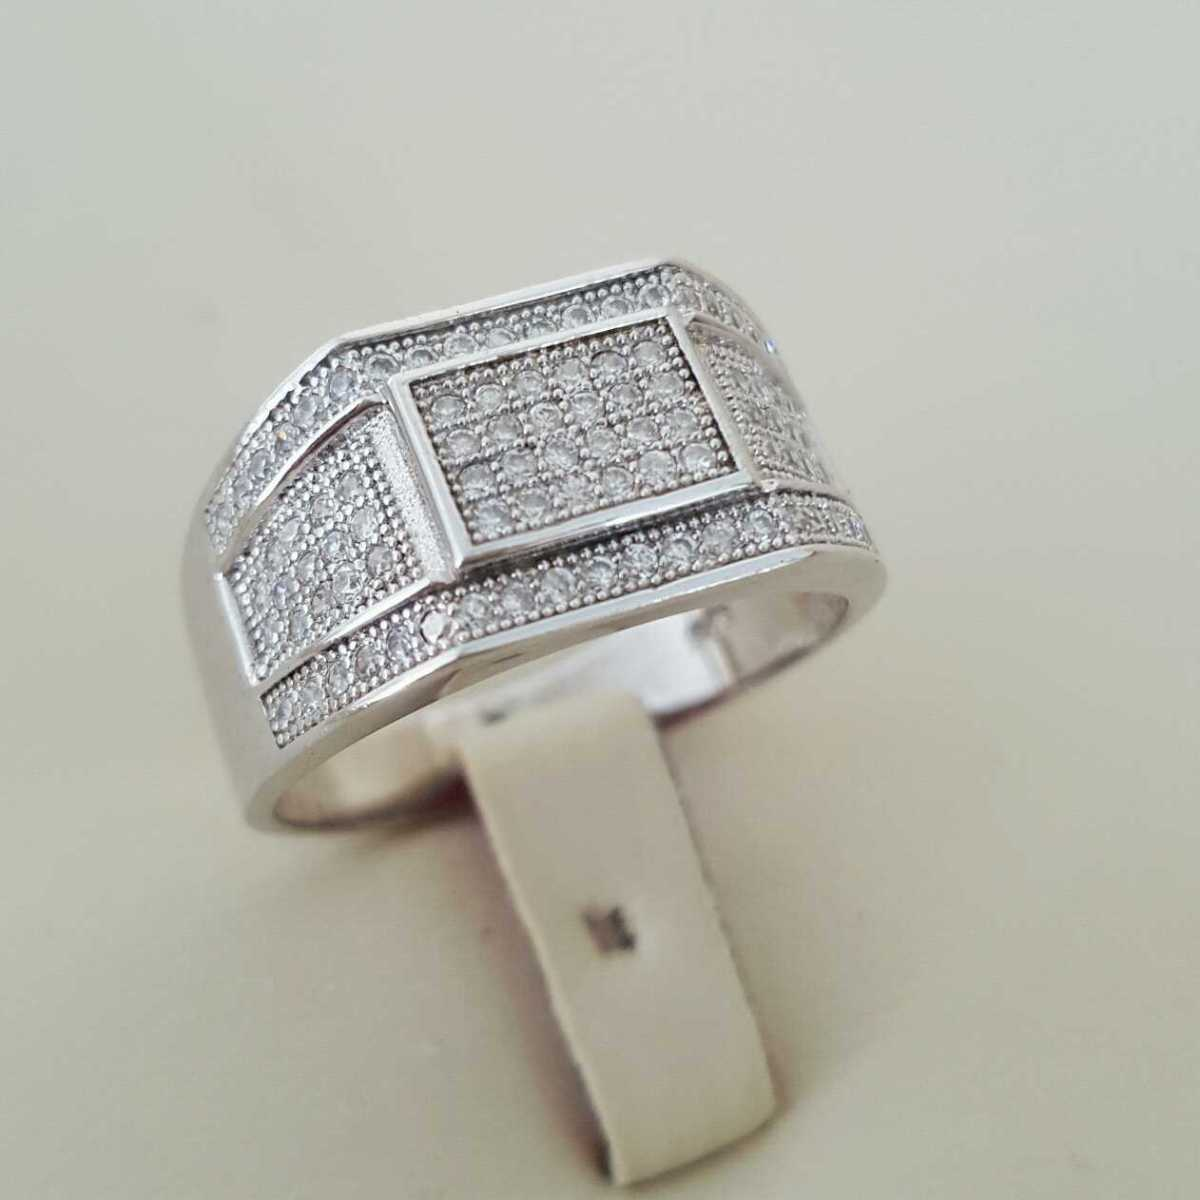 Pure Silver 925 Men Rings Italian Rings Imported From Dubai 3 natural gemstones pakistan + 925 silver jewelry online